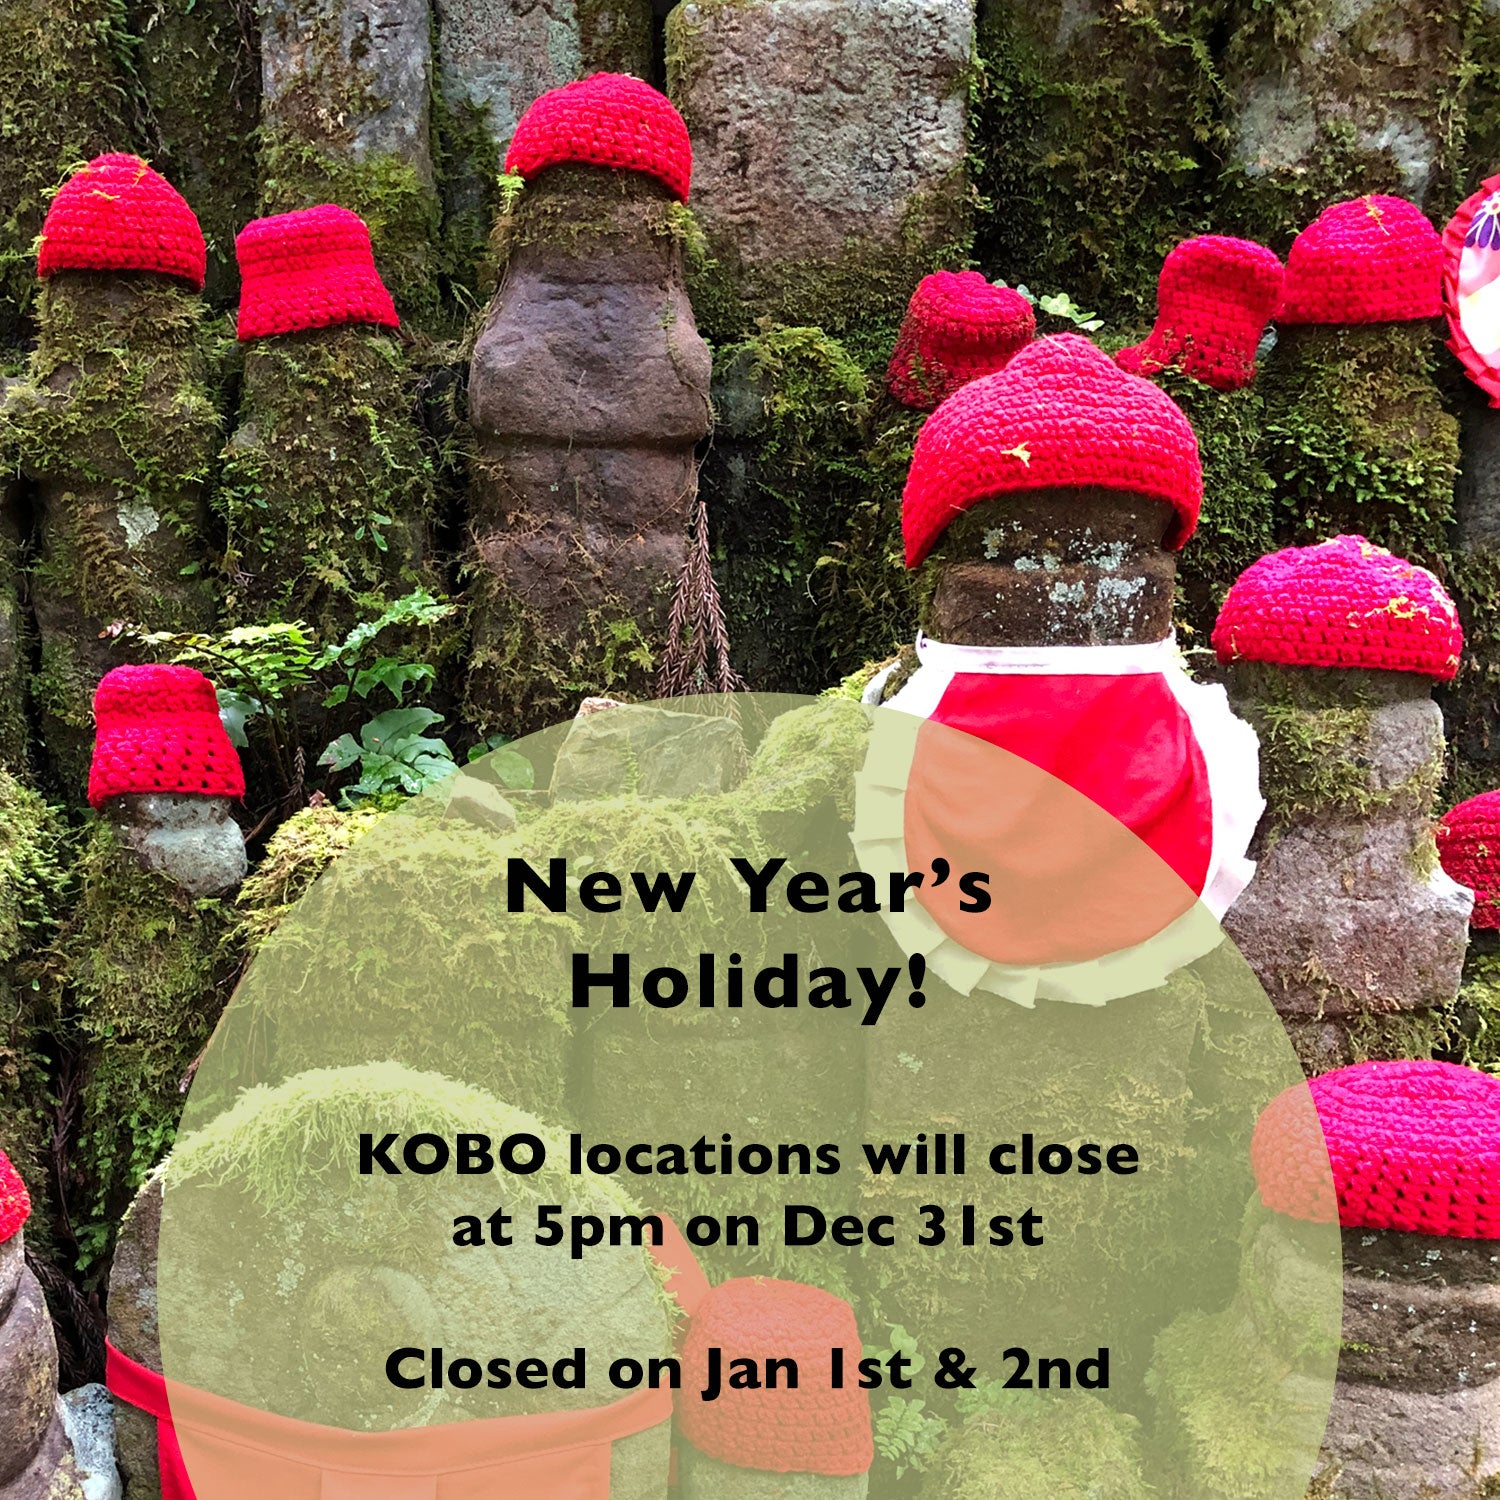 KOBO New Year's Holiday Hours